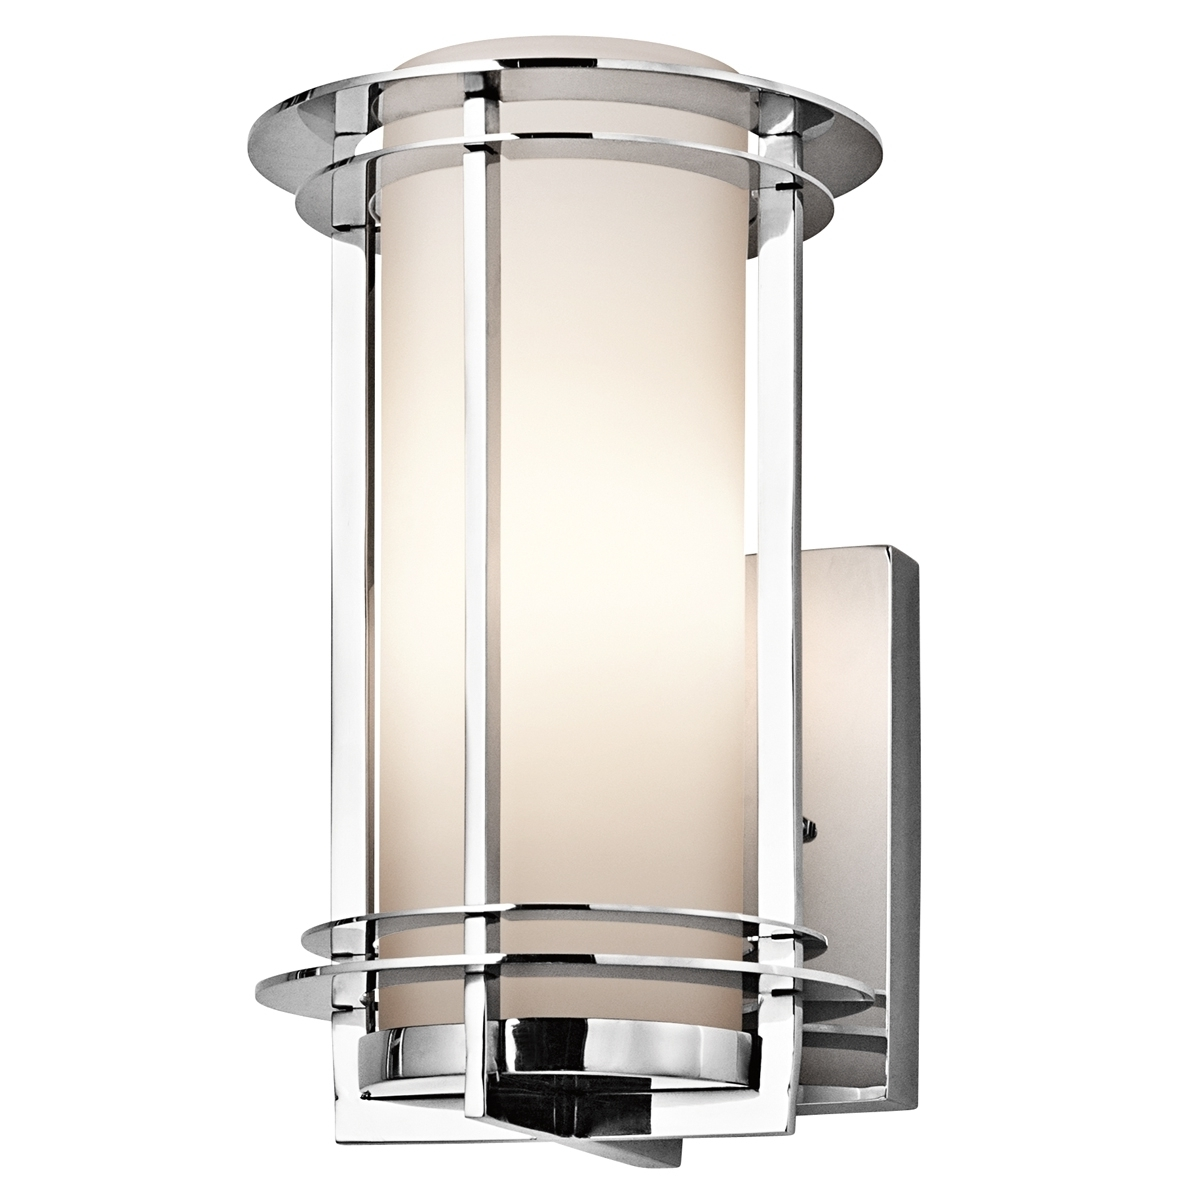 Kichler Outdoor Lighting Wall Sconce • Wall Sconces Inside Most Recently Released Chrome Outdoor Wall Lighting (View 11 of 20)